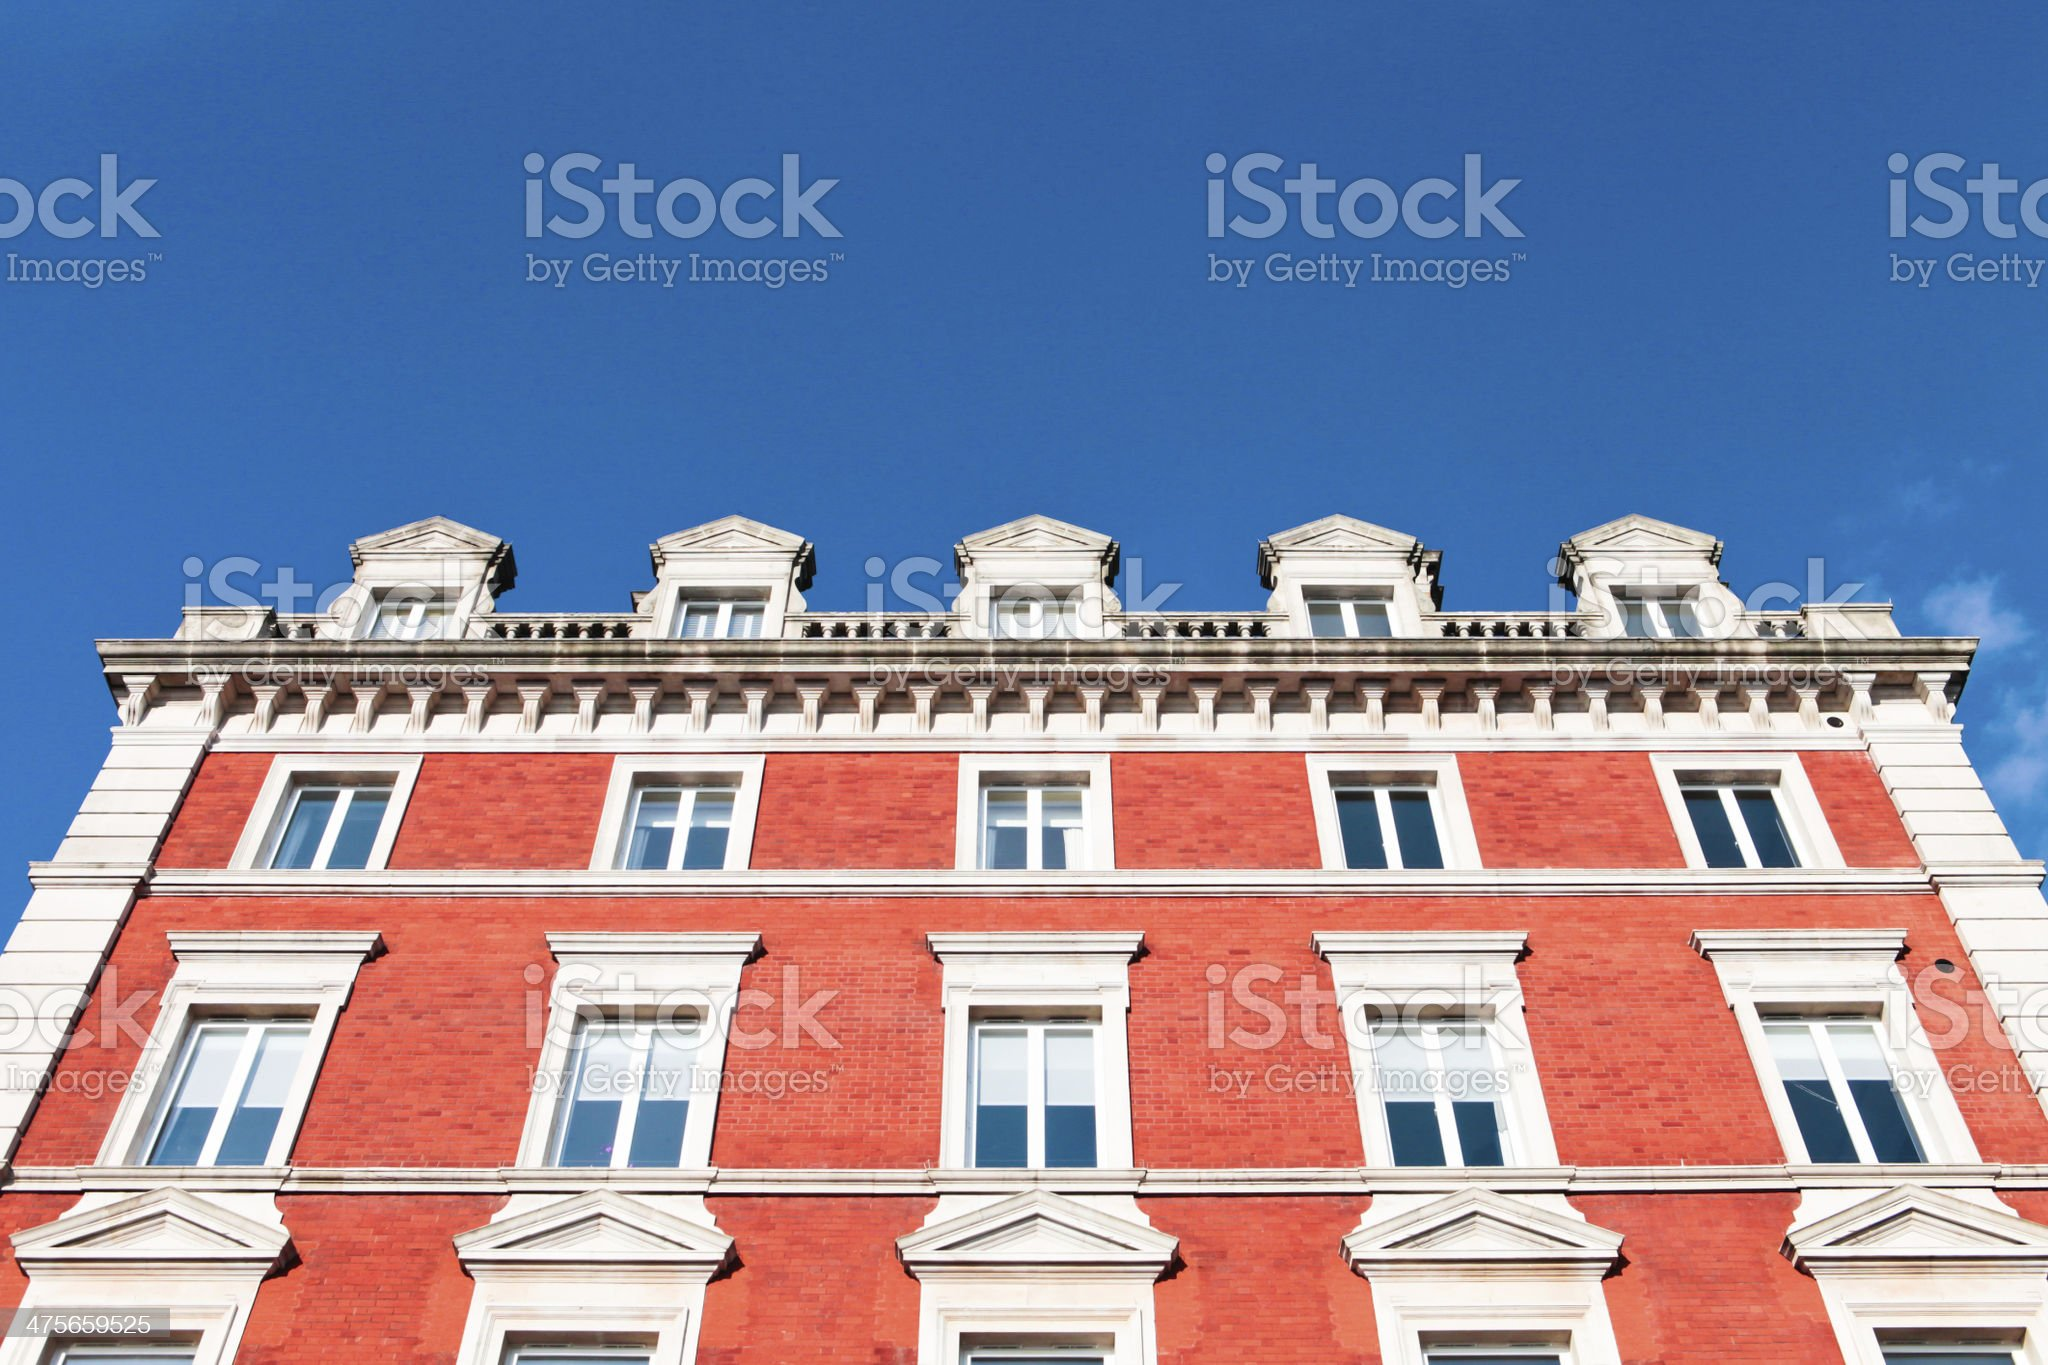 London building royalty-free stock photo